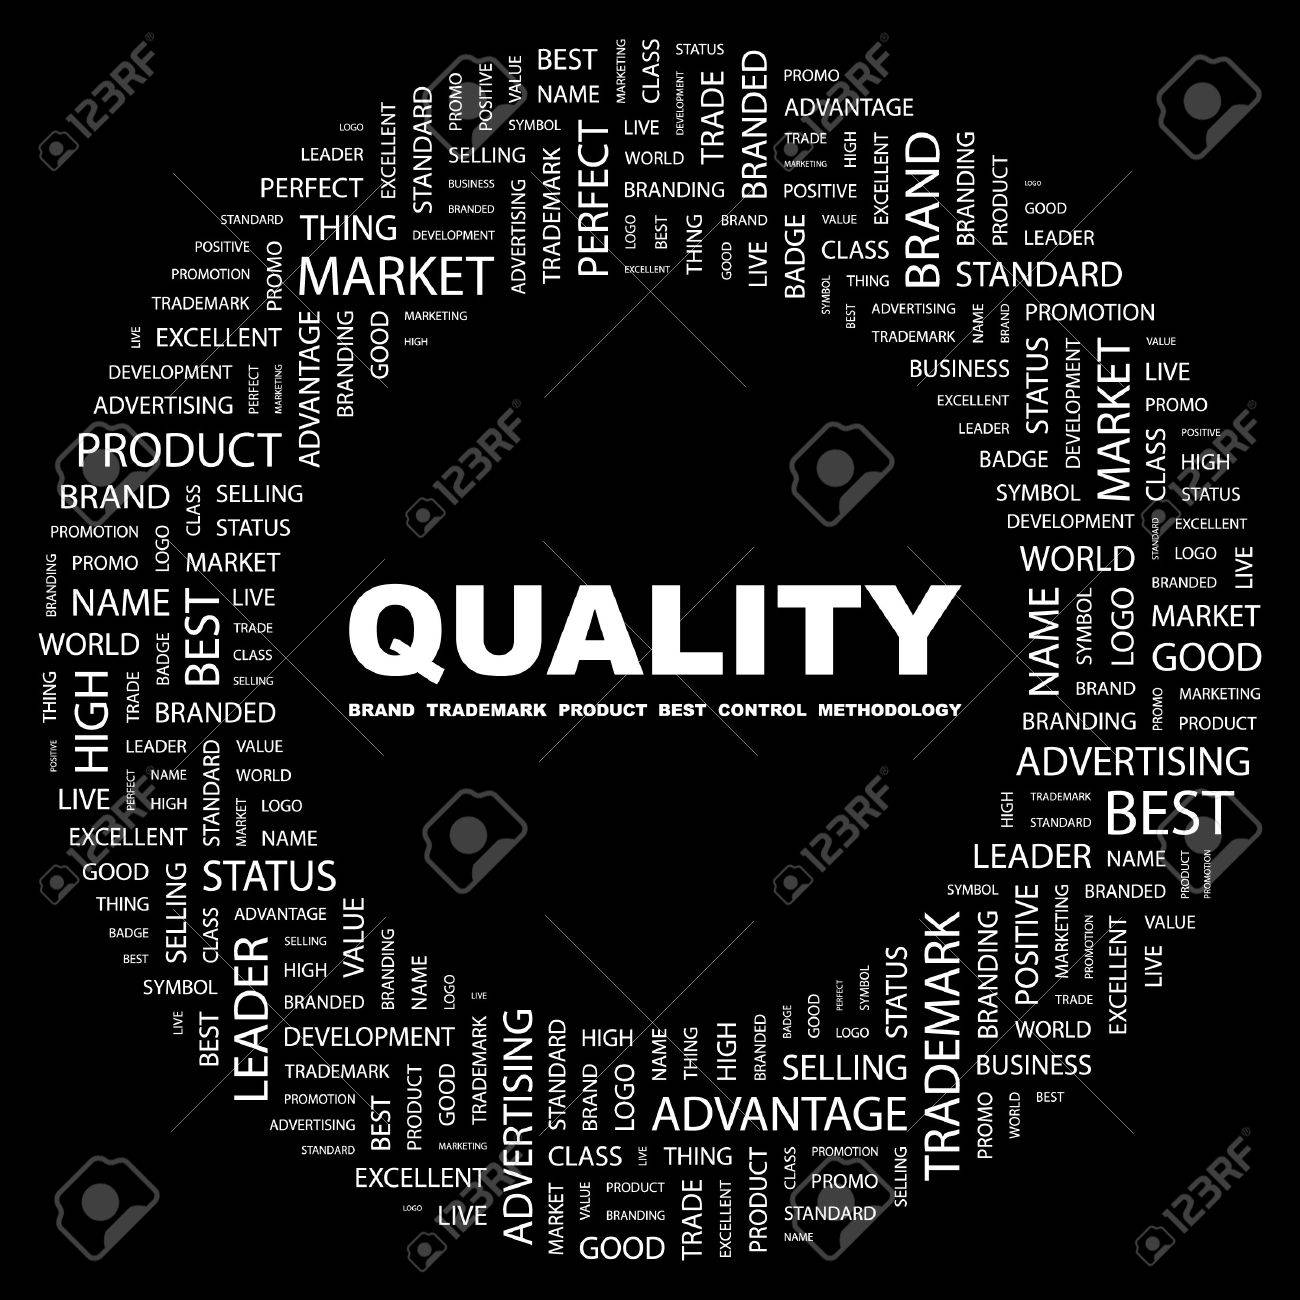 QUALITY. Word collage on black background illustration. Stock Vector - 7356785